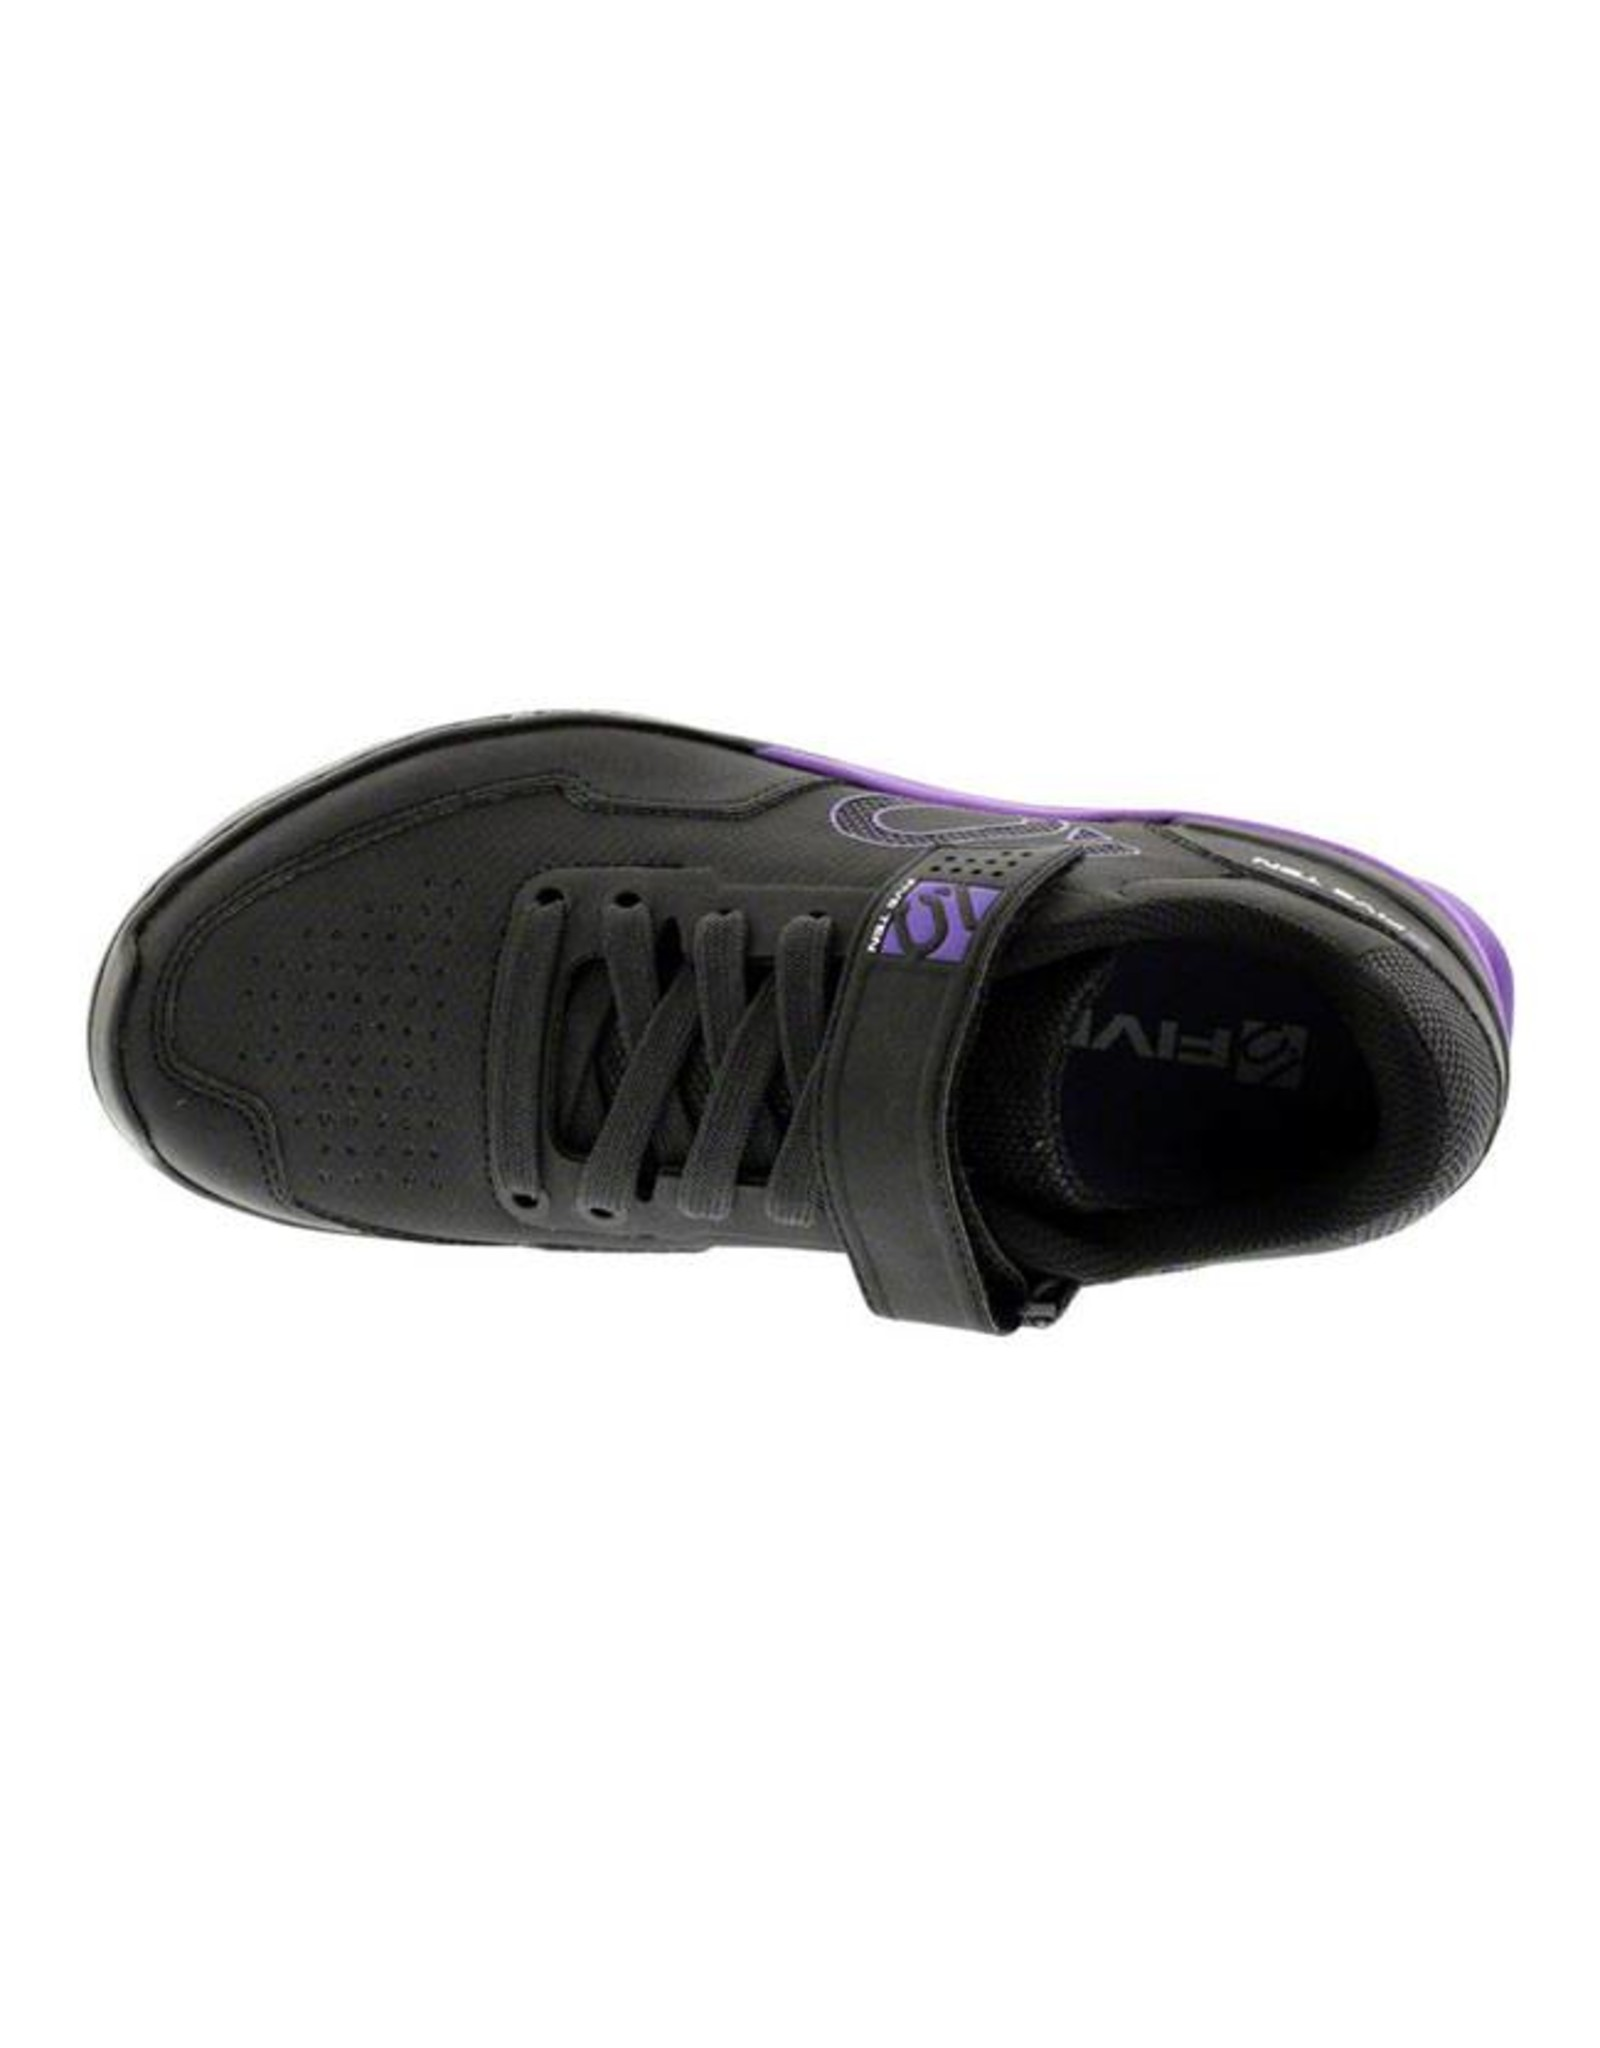 Five Ten Five Ten Kestrel Lace Women's Clipless Shoe: Black Purple 5